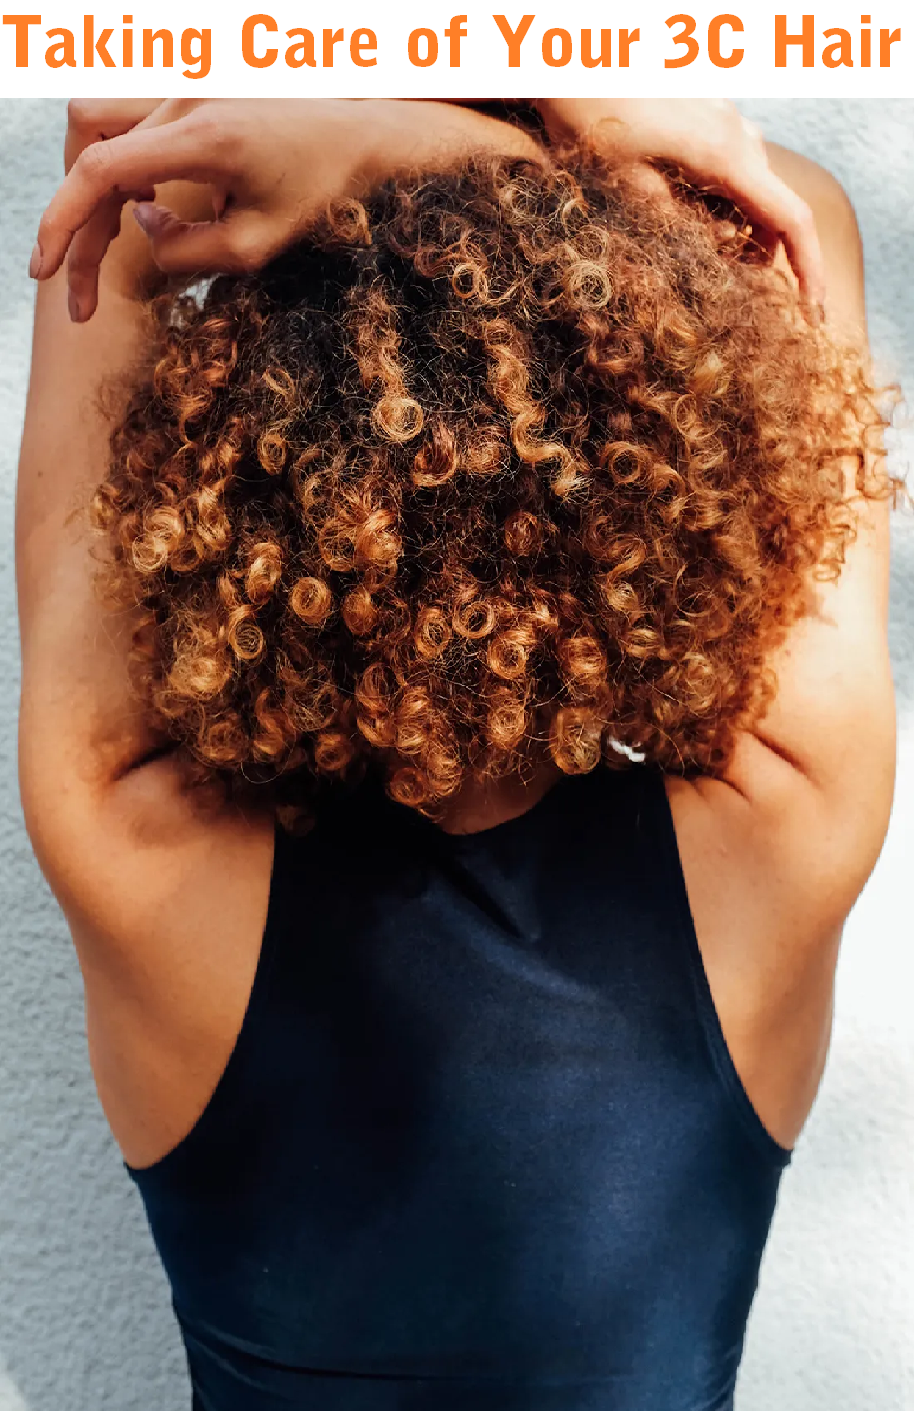 taking care of your 3c hair